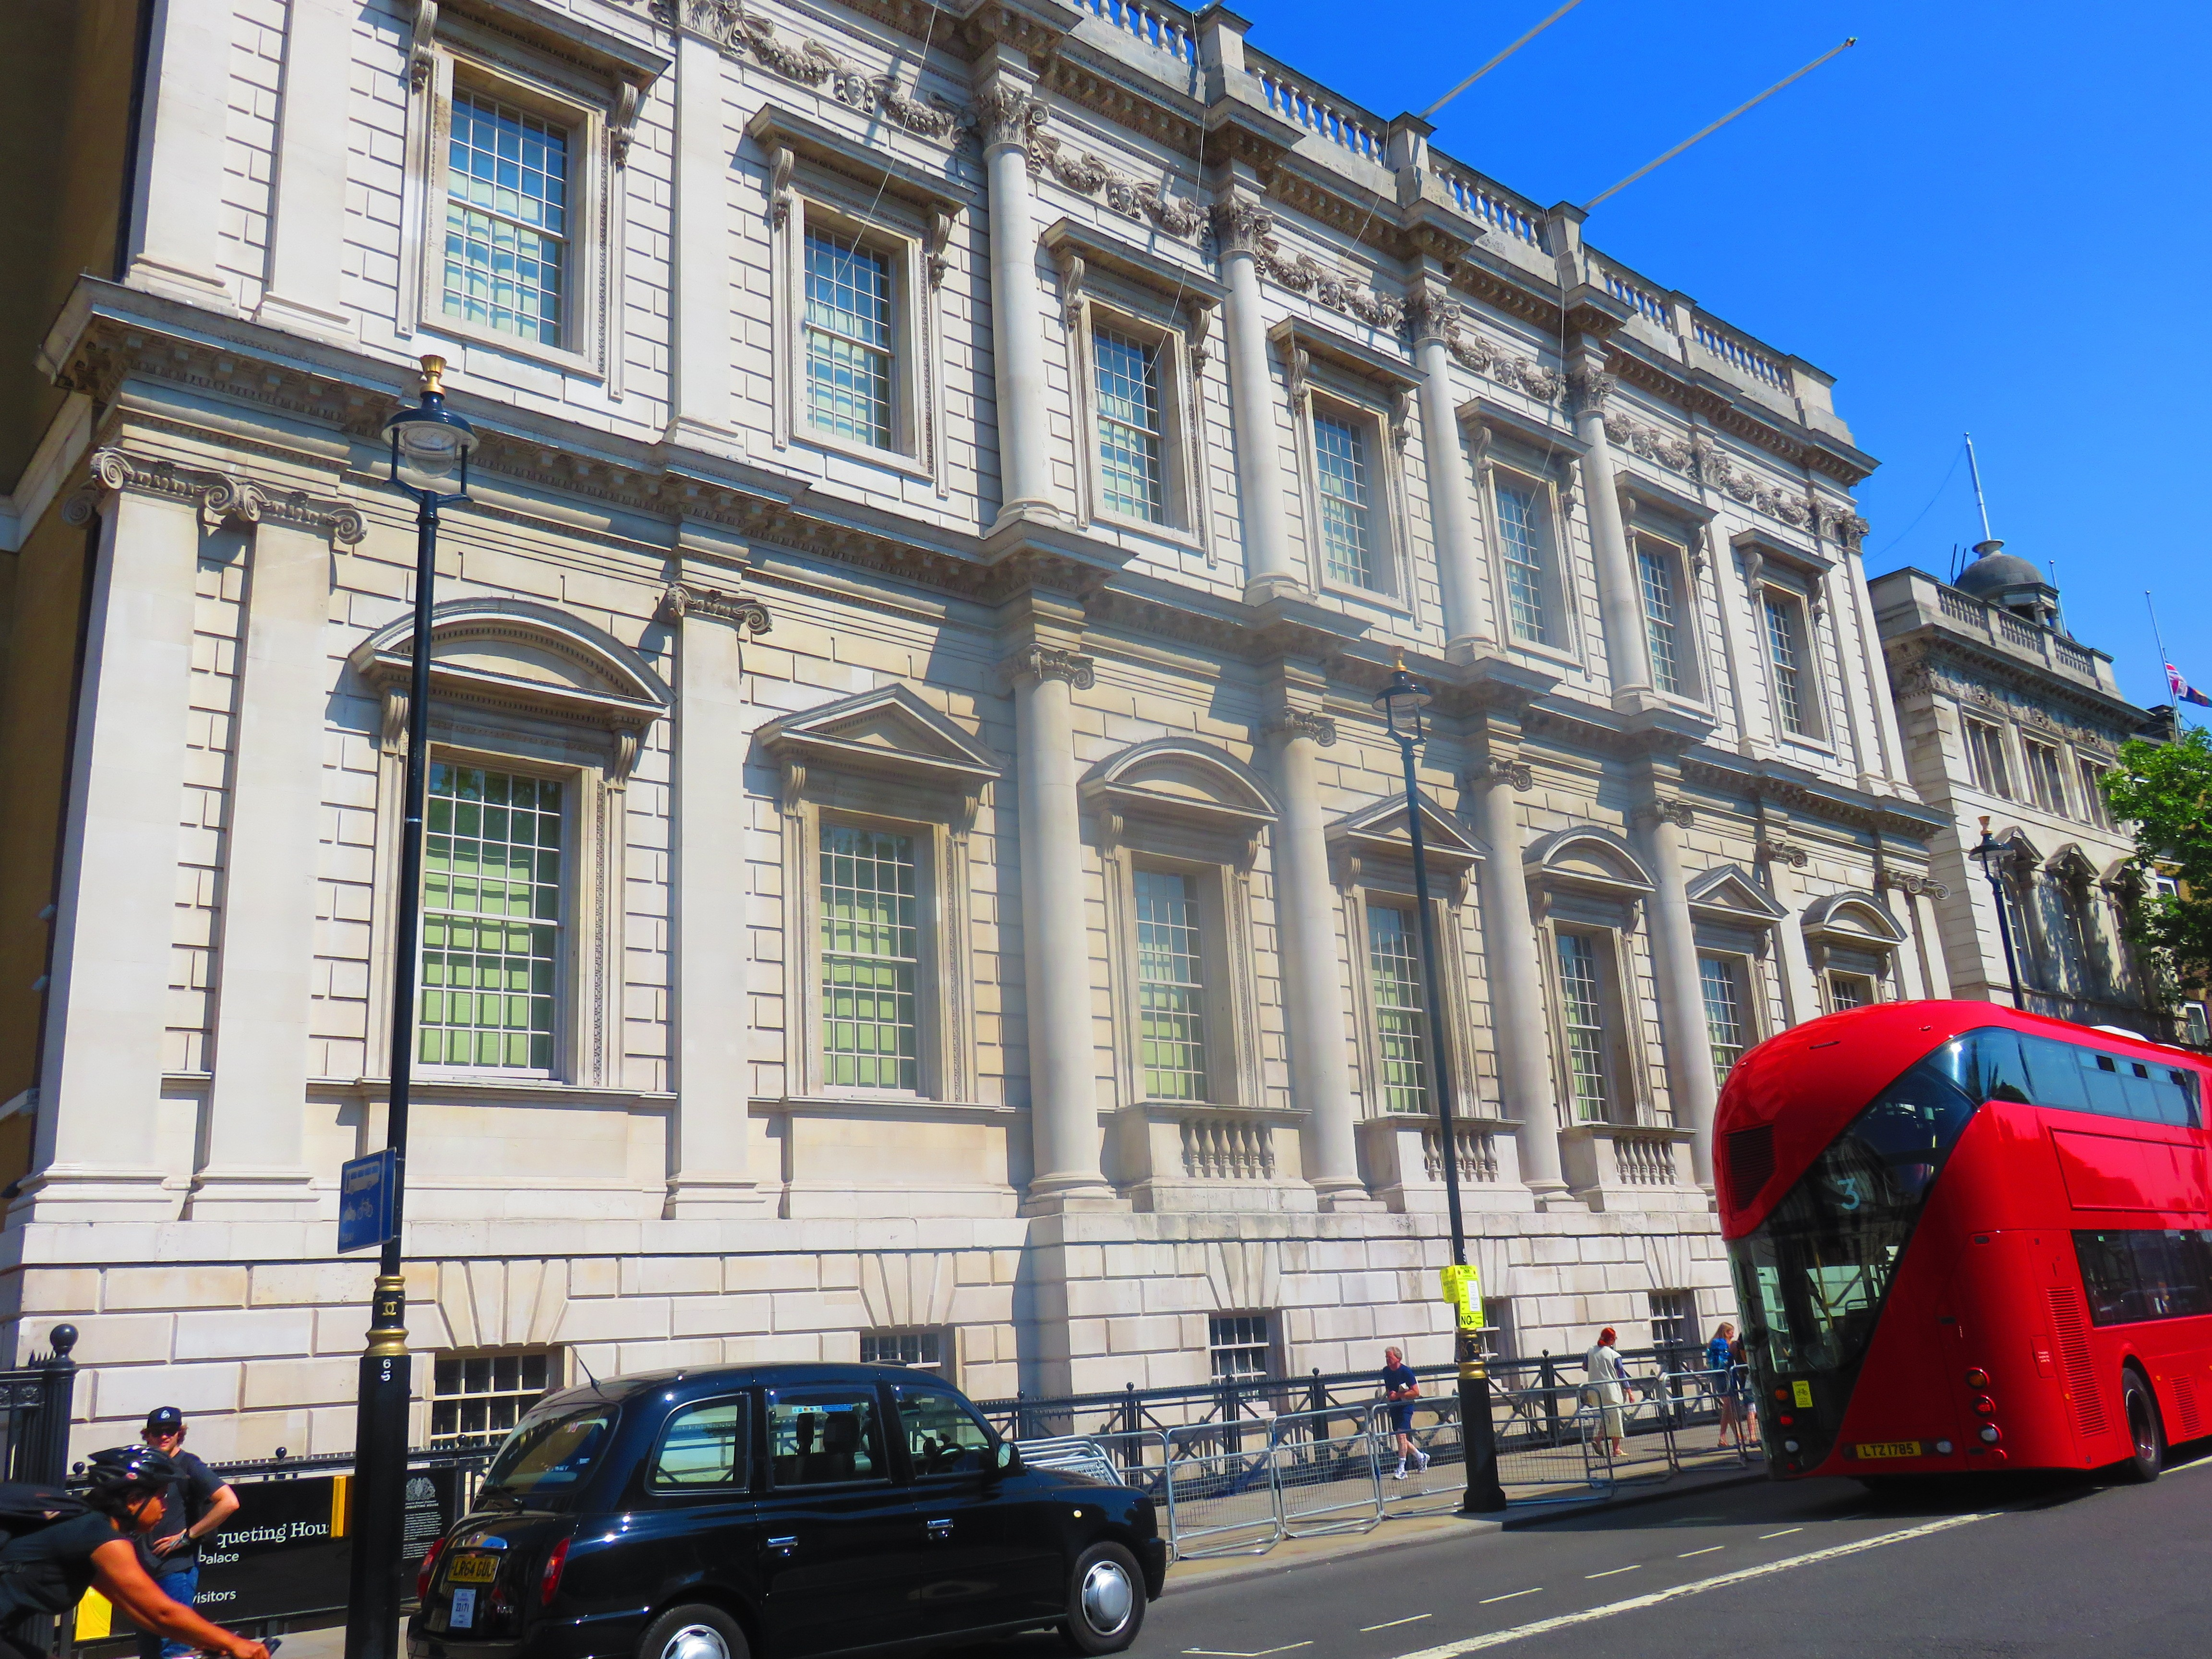 Banqueting House Whitehall London Tickets